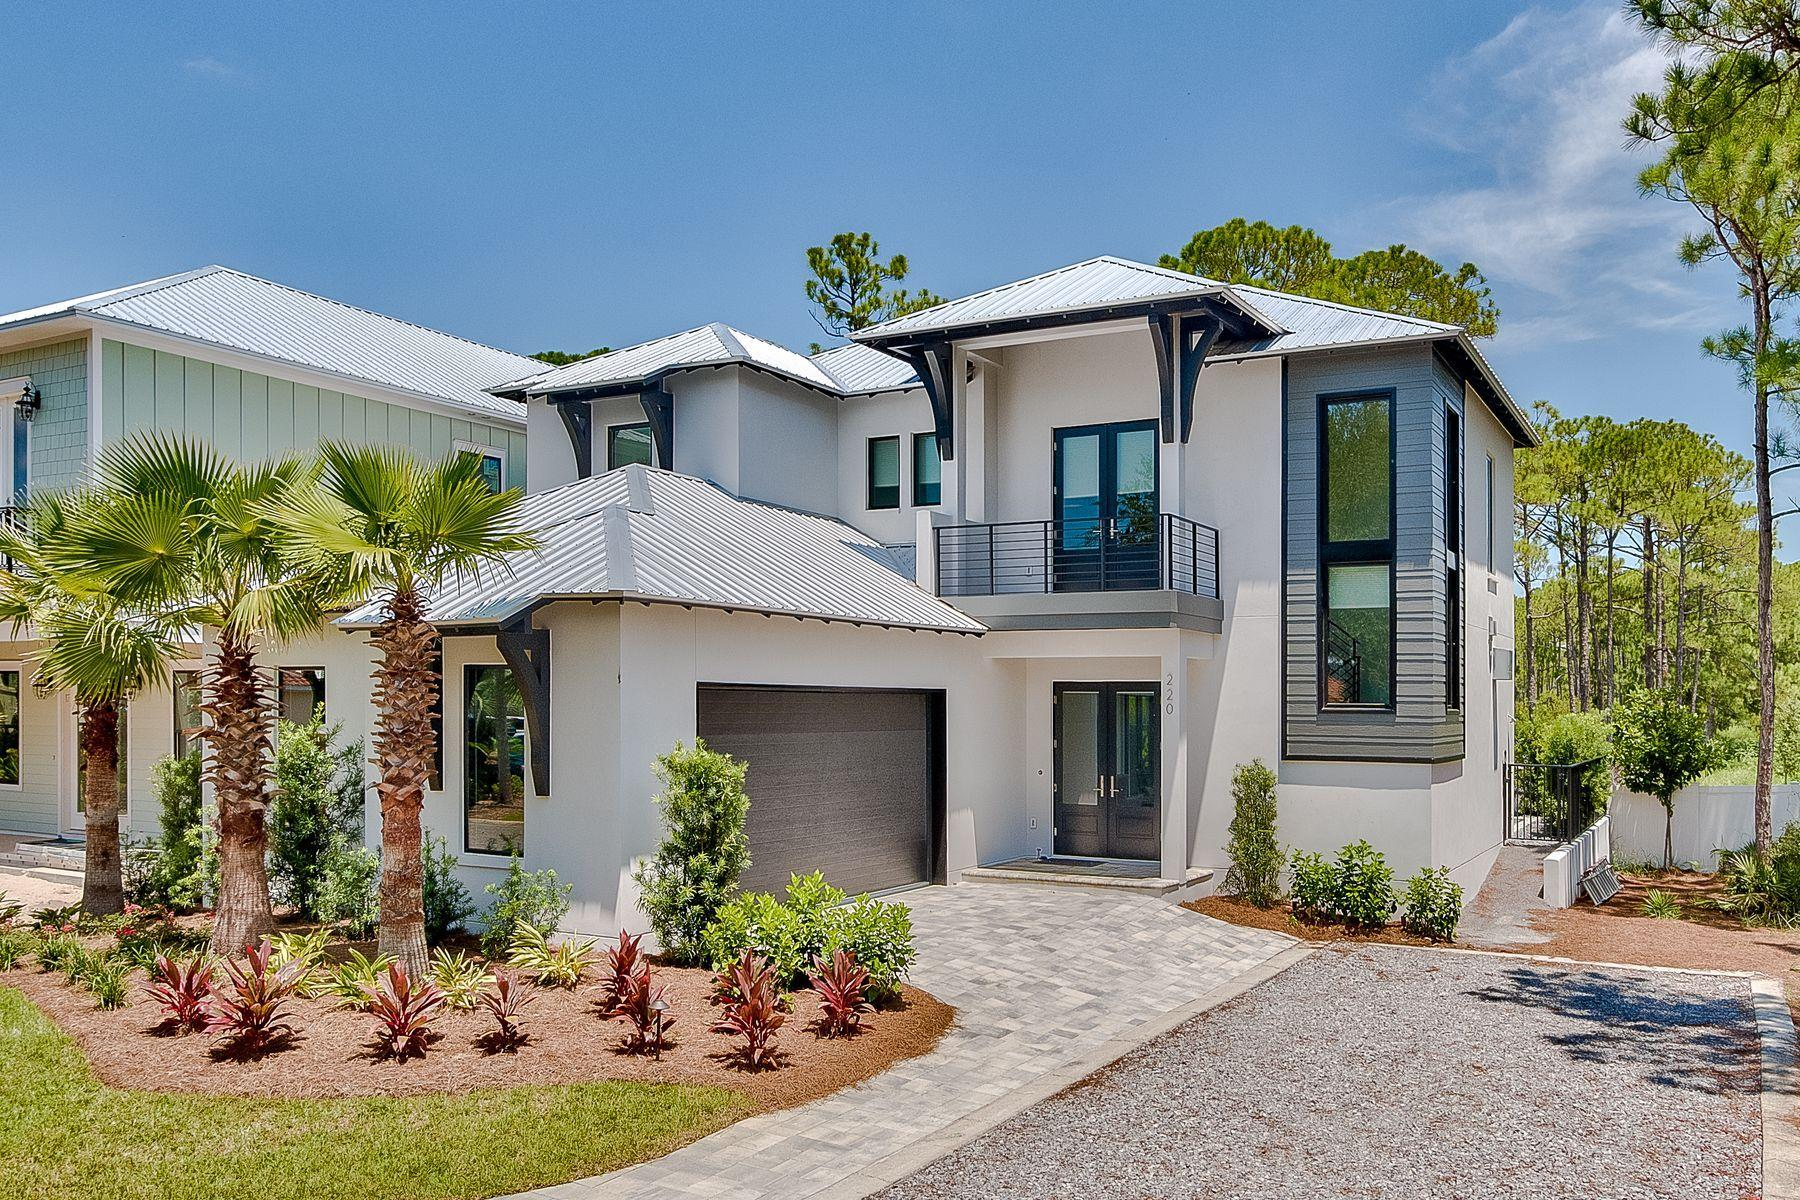 Exemplary new construction masterfully executed with precise attention to detail, this sleek five be